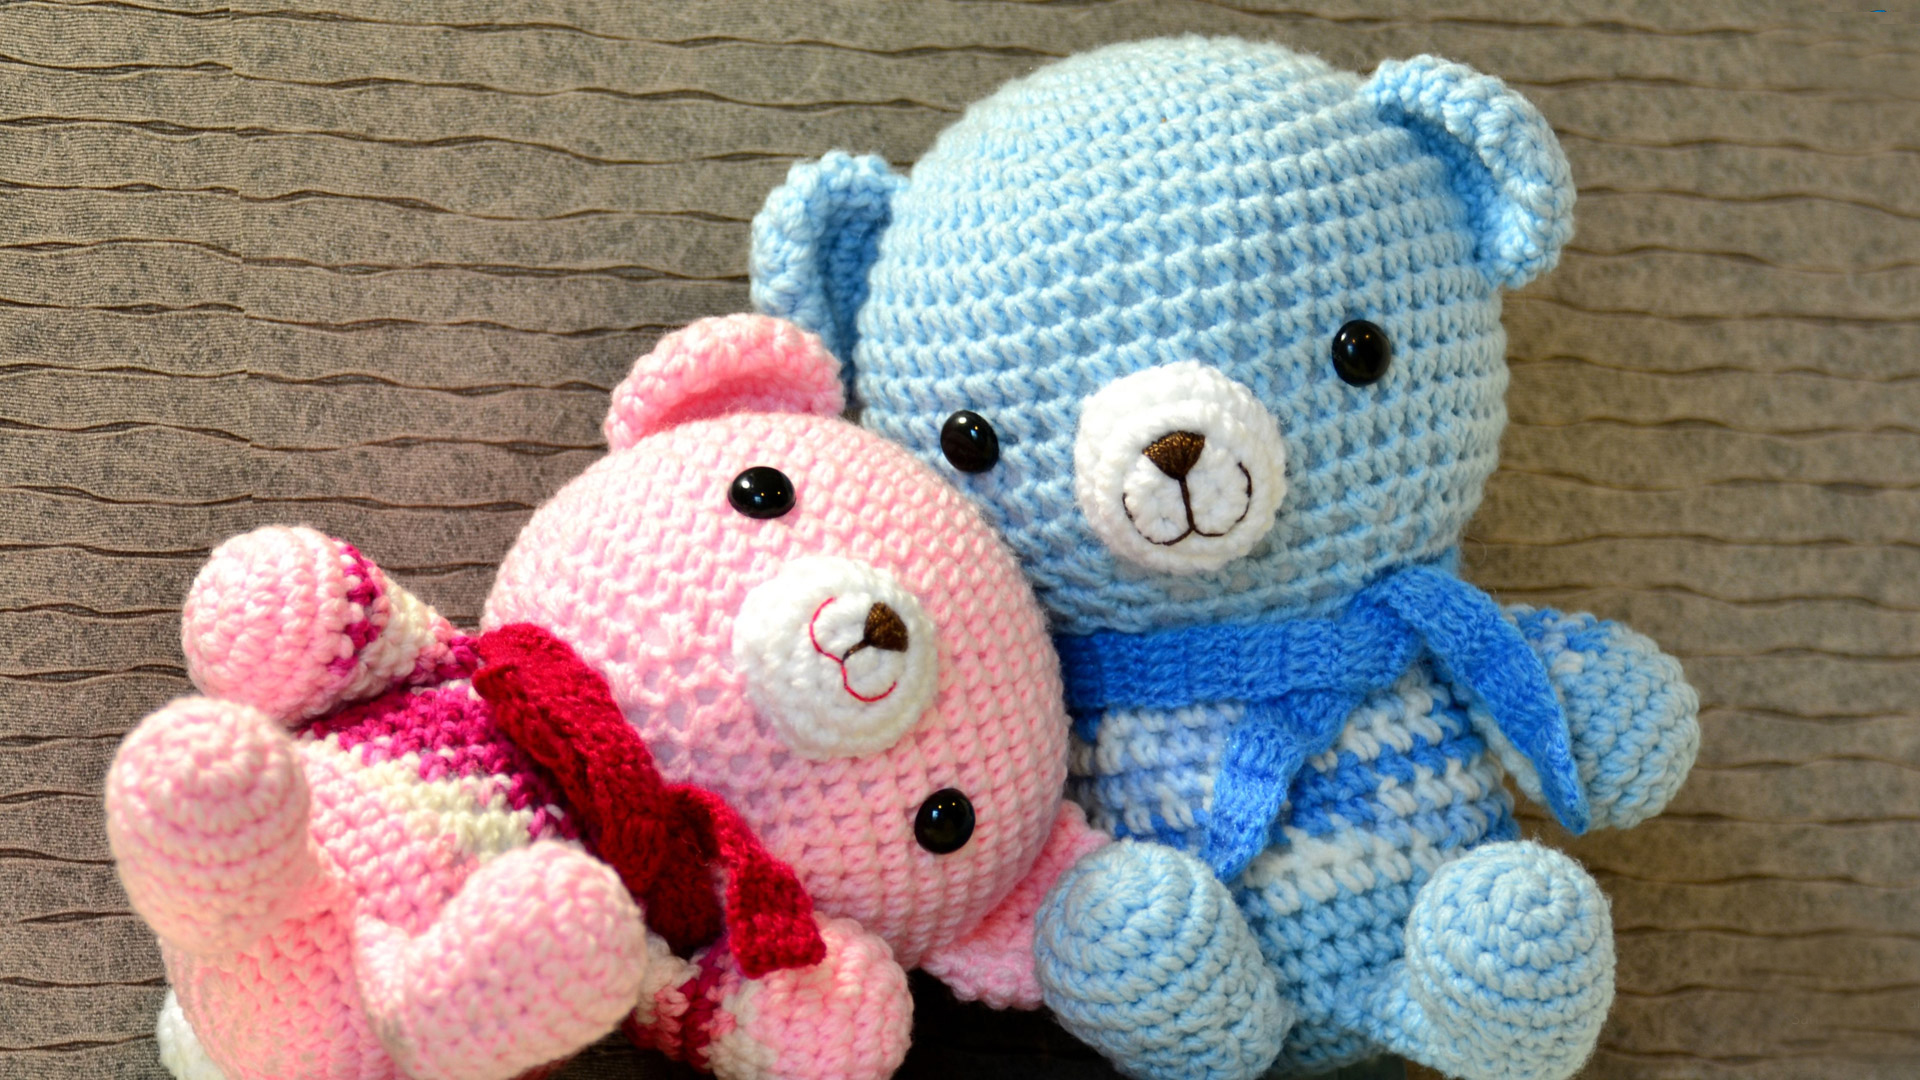 cute teddy bear hd wallpapers hd wallpapers pop 1920x1080